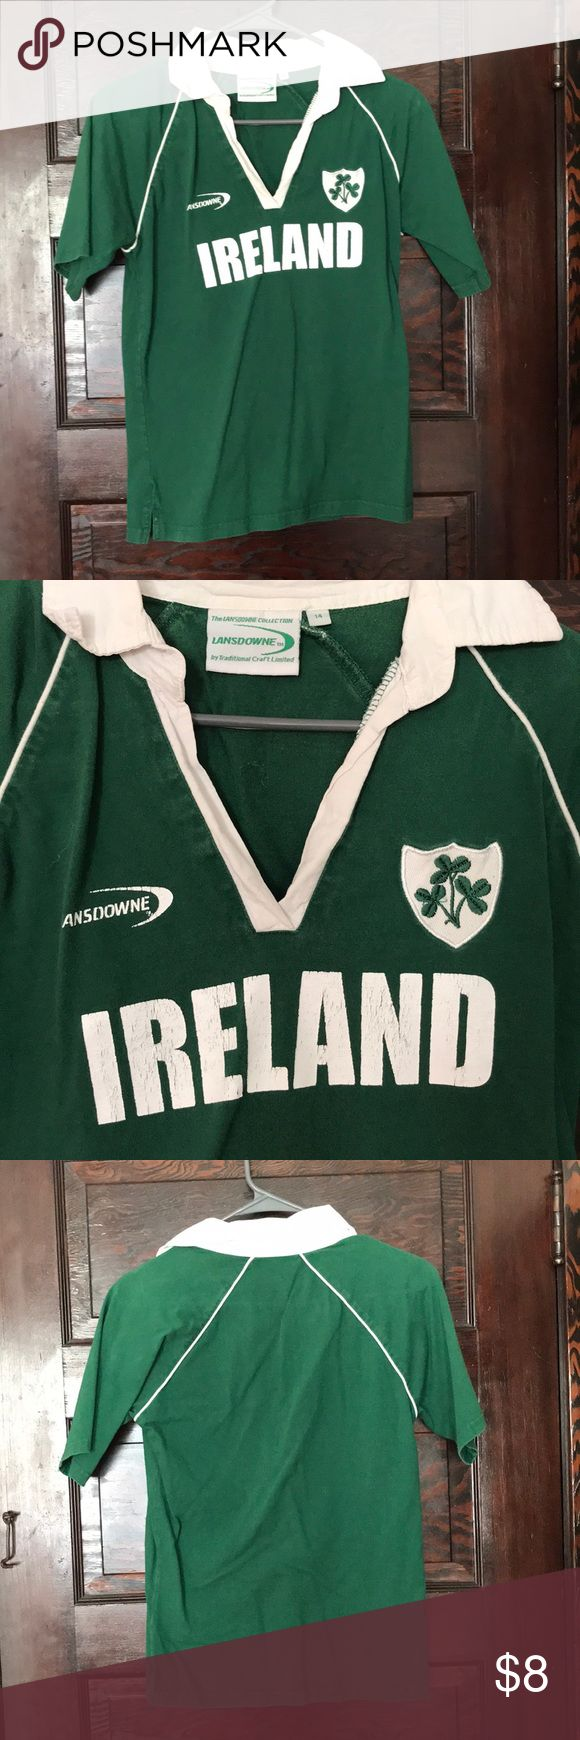 Irish Rugby Shirt Rugby shirt for Ireland. Collared shirt with logo. There is sign of wear but still works for a wonderful St. Patty's Day shirt! Child size 14 but I usually wear a woman's small and it fits me just fine Tops Tees - Short Sleeve